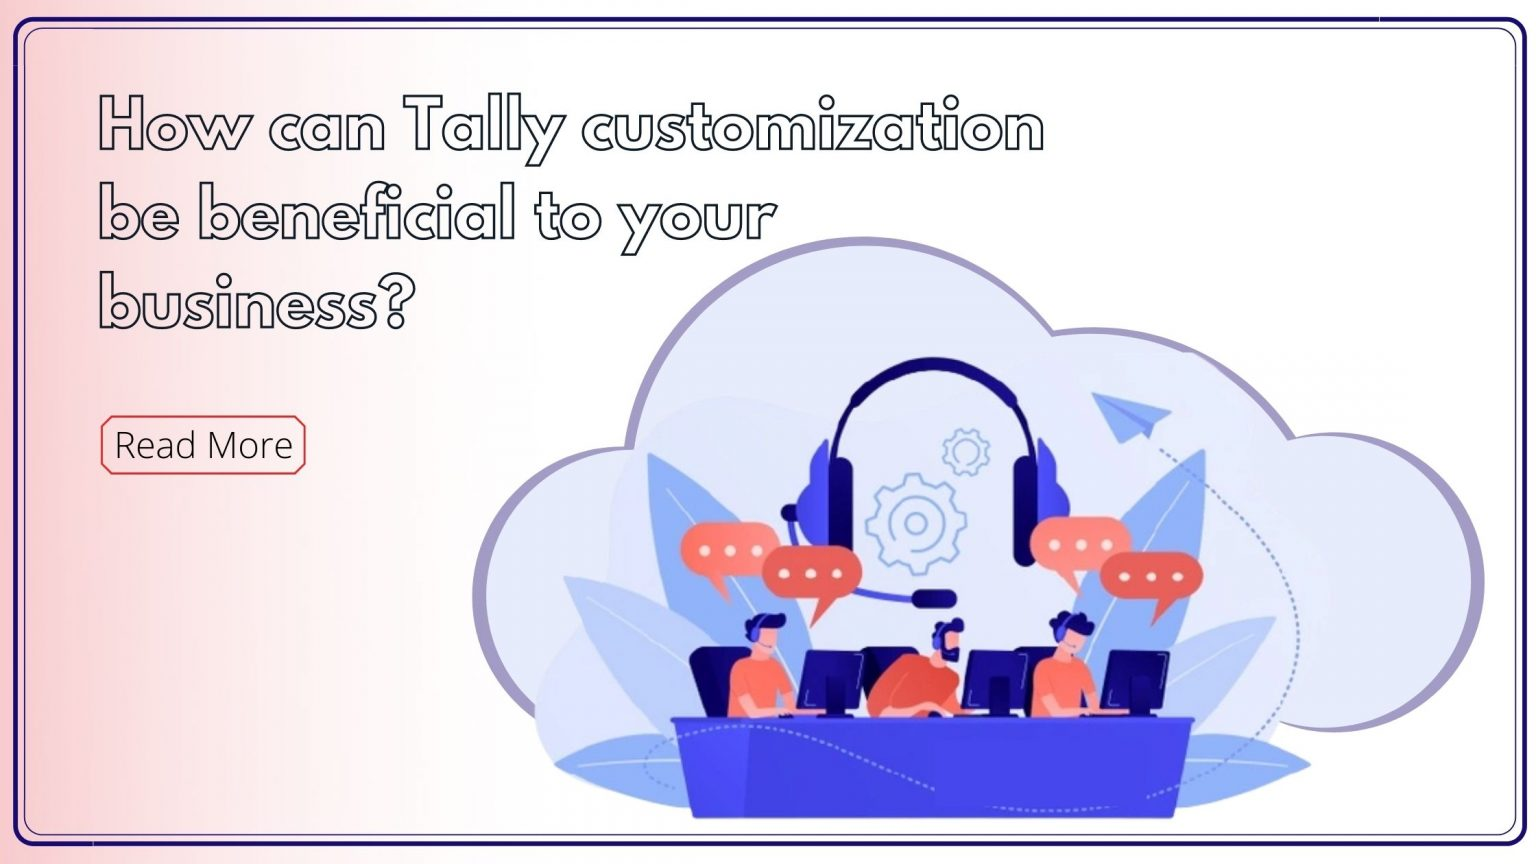 How can Tally customization be beneficial to your business?